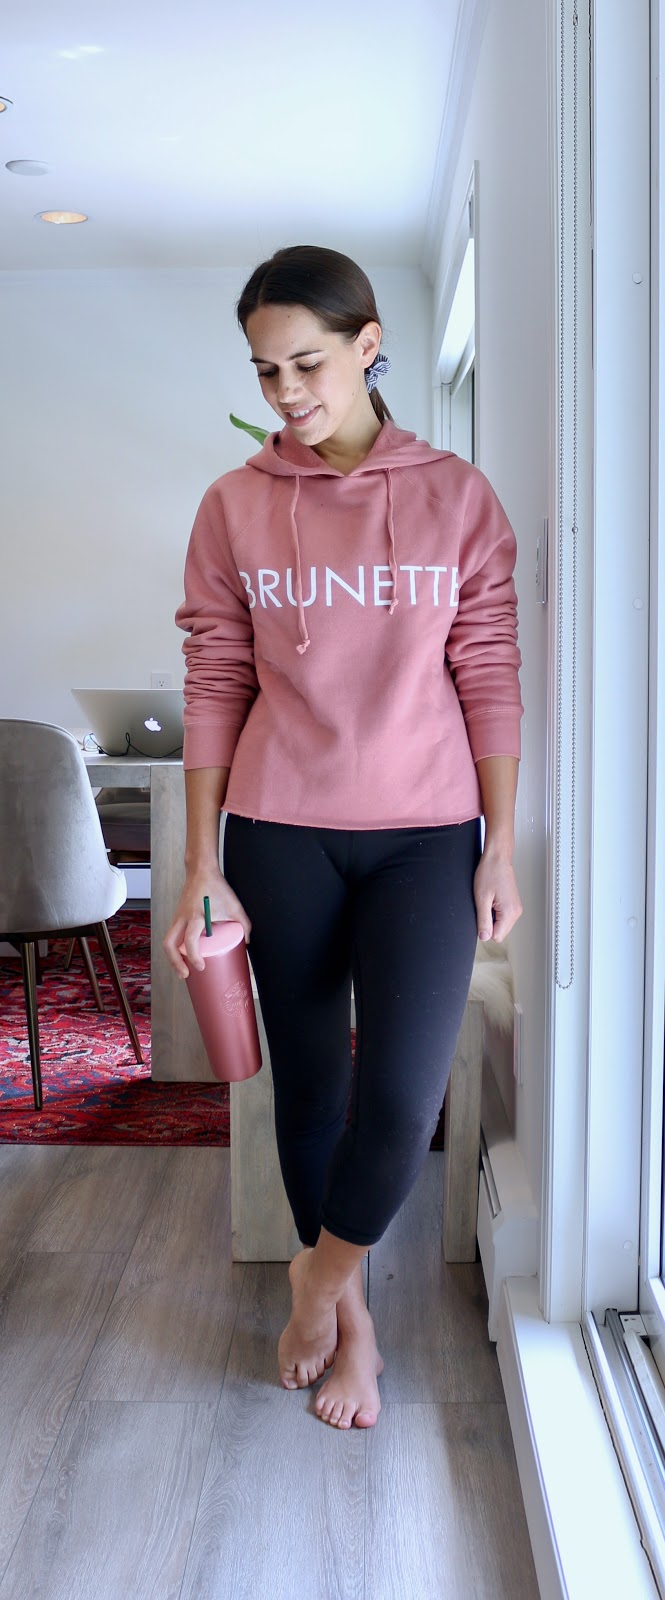 Jules in Flats - Brunette the Label Cropped Hoodie (Easy Work from Home Outfit)